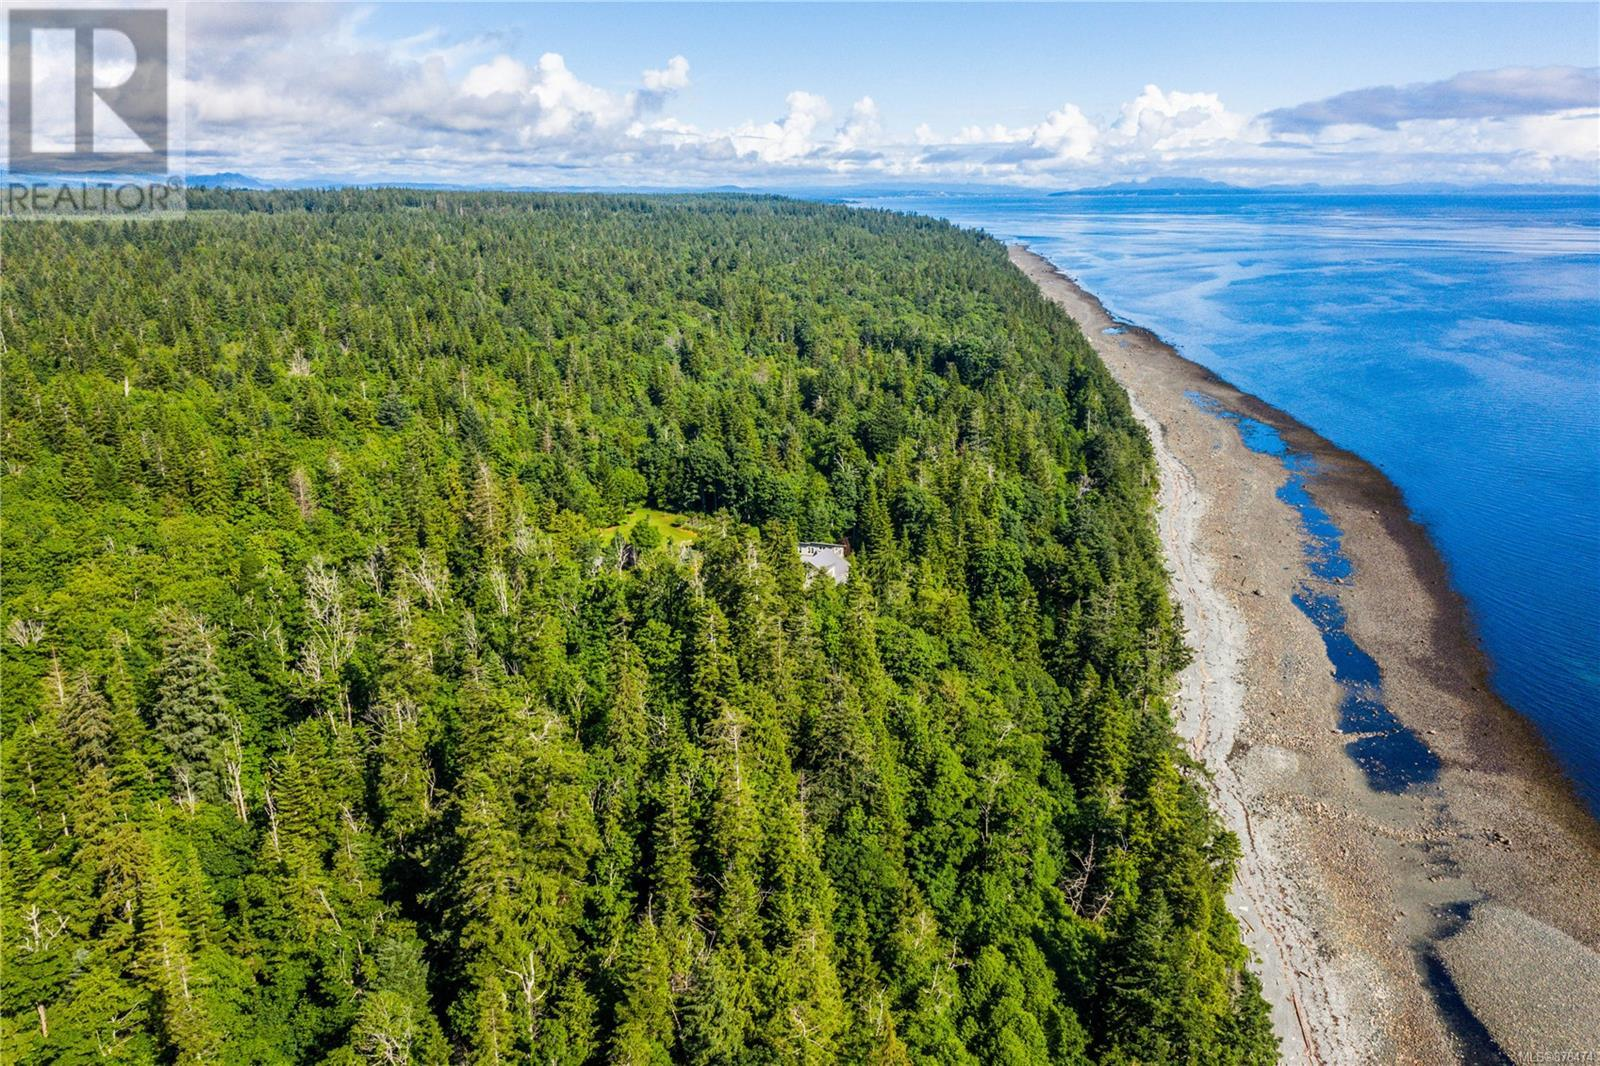 MLS® #878474 - Courtenay For sale Image #44